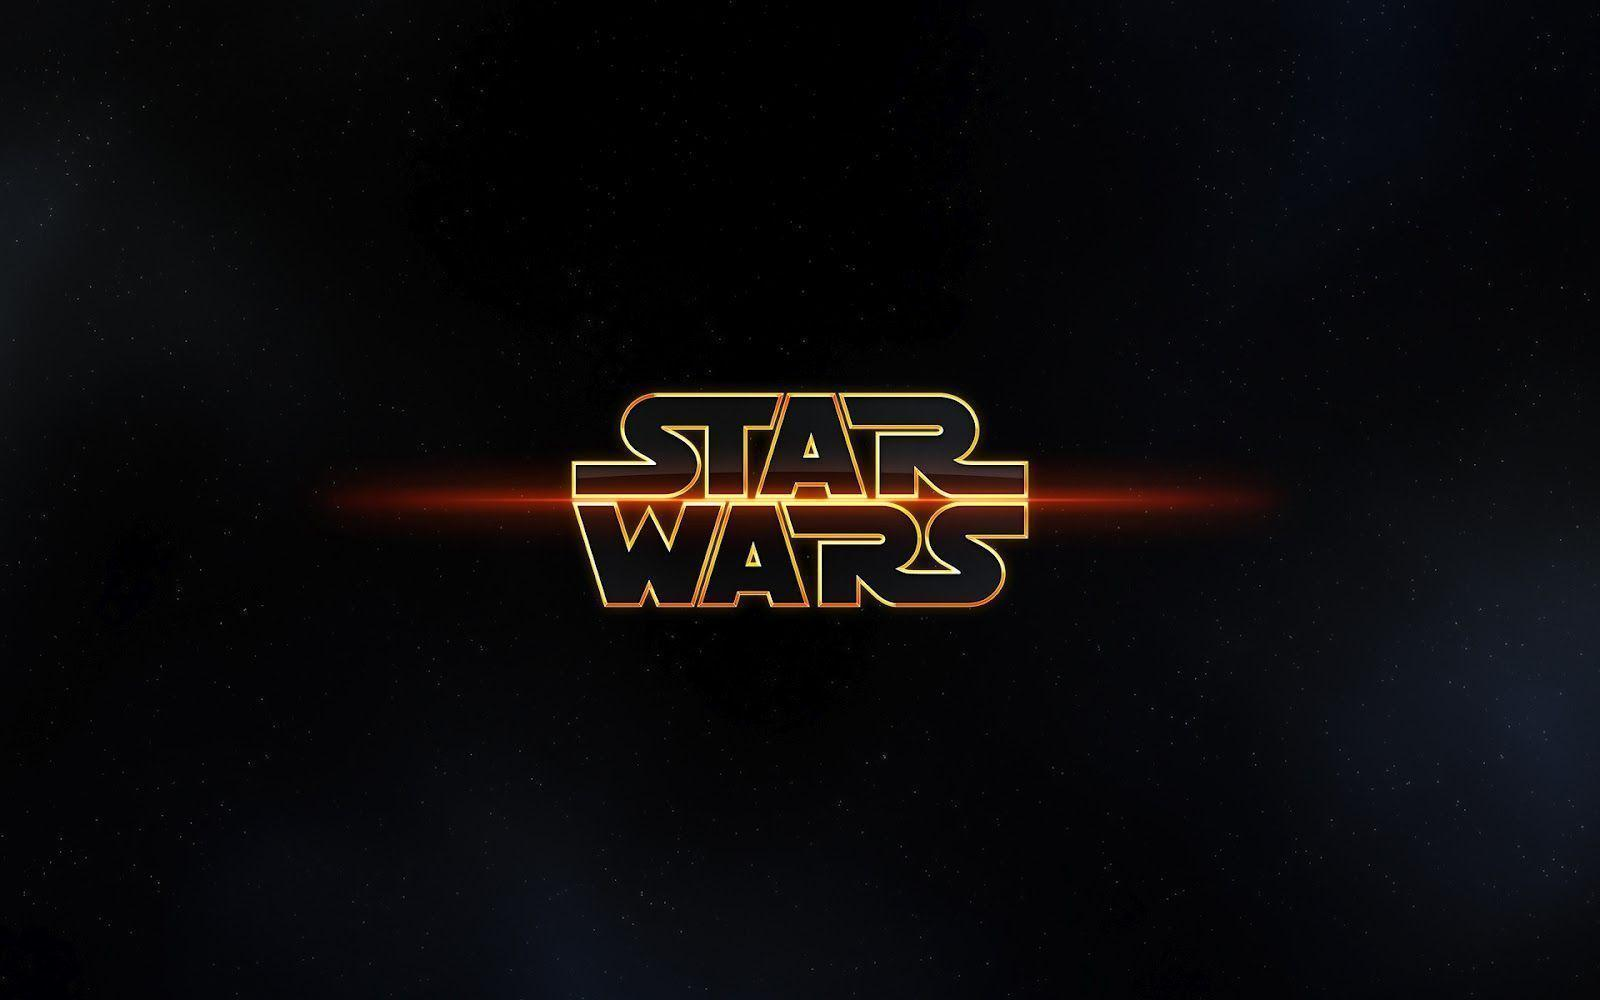 Star Wars Wallpapers